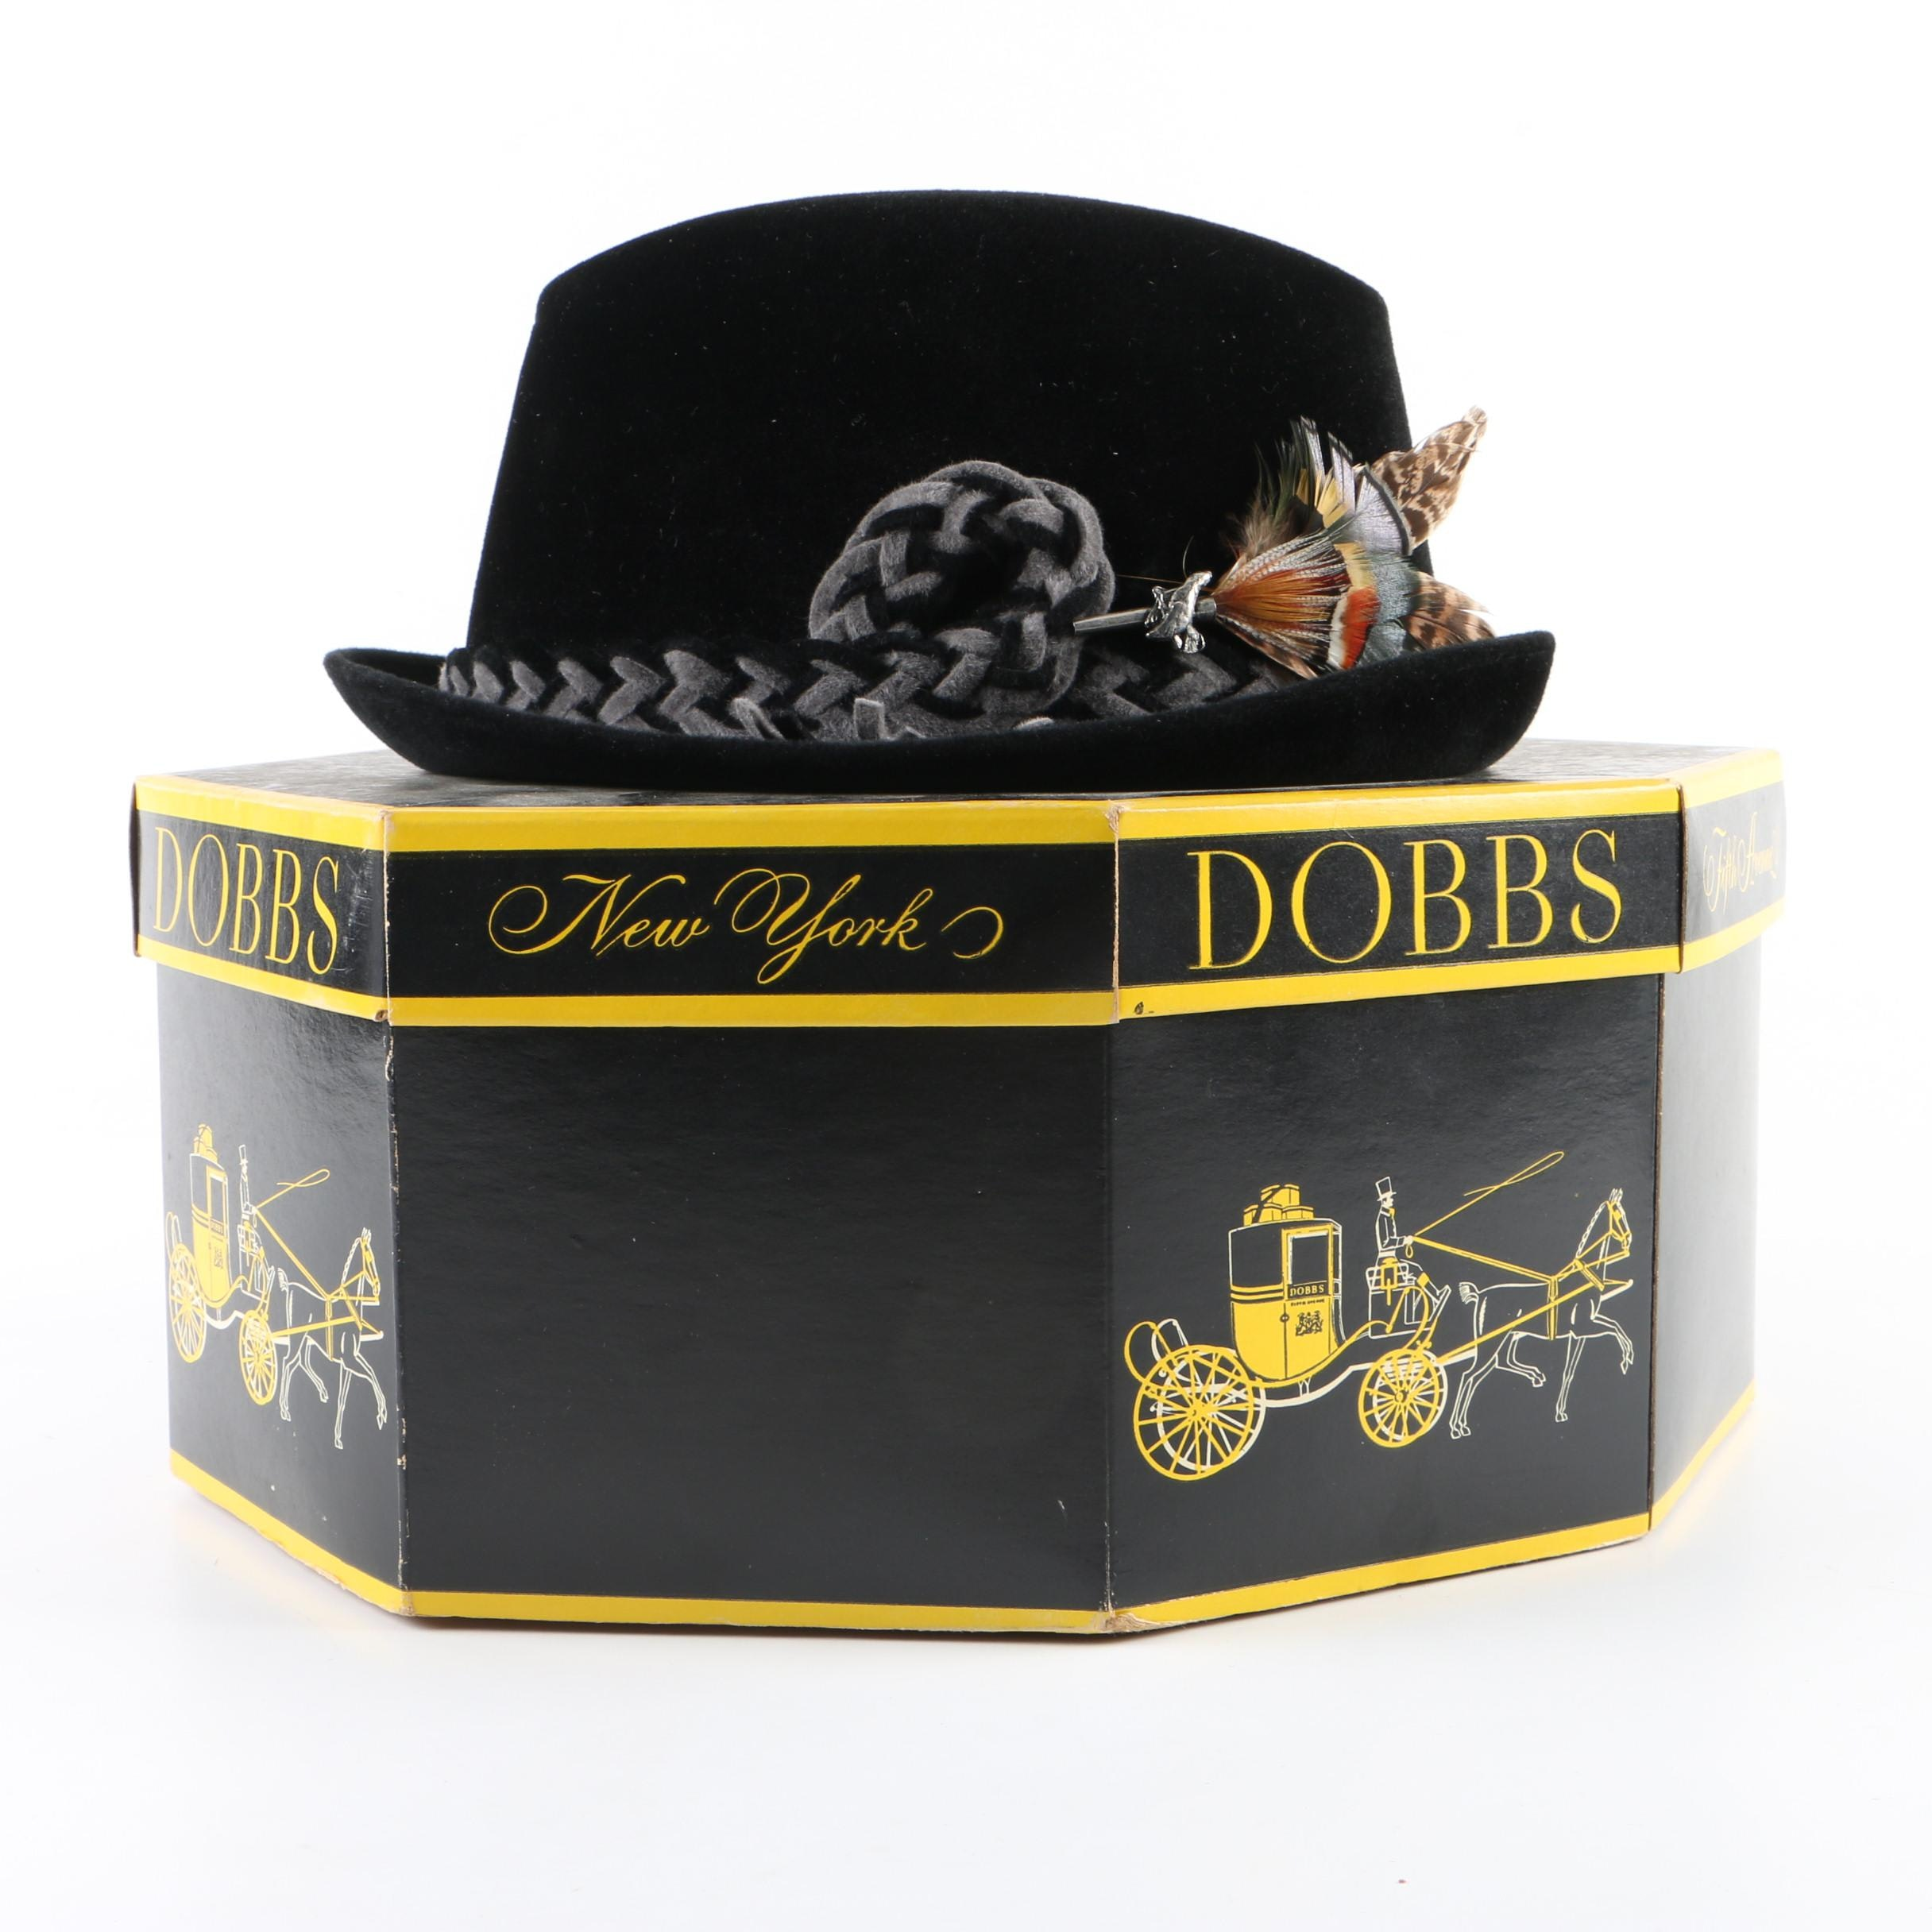 Men's Vintage Dobbs Black Felt Fedora with Original Box